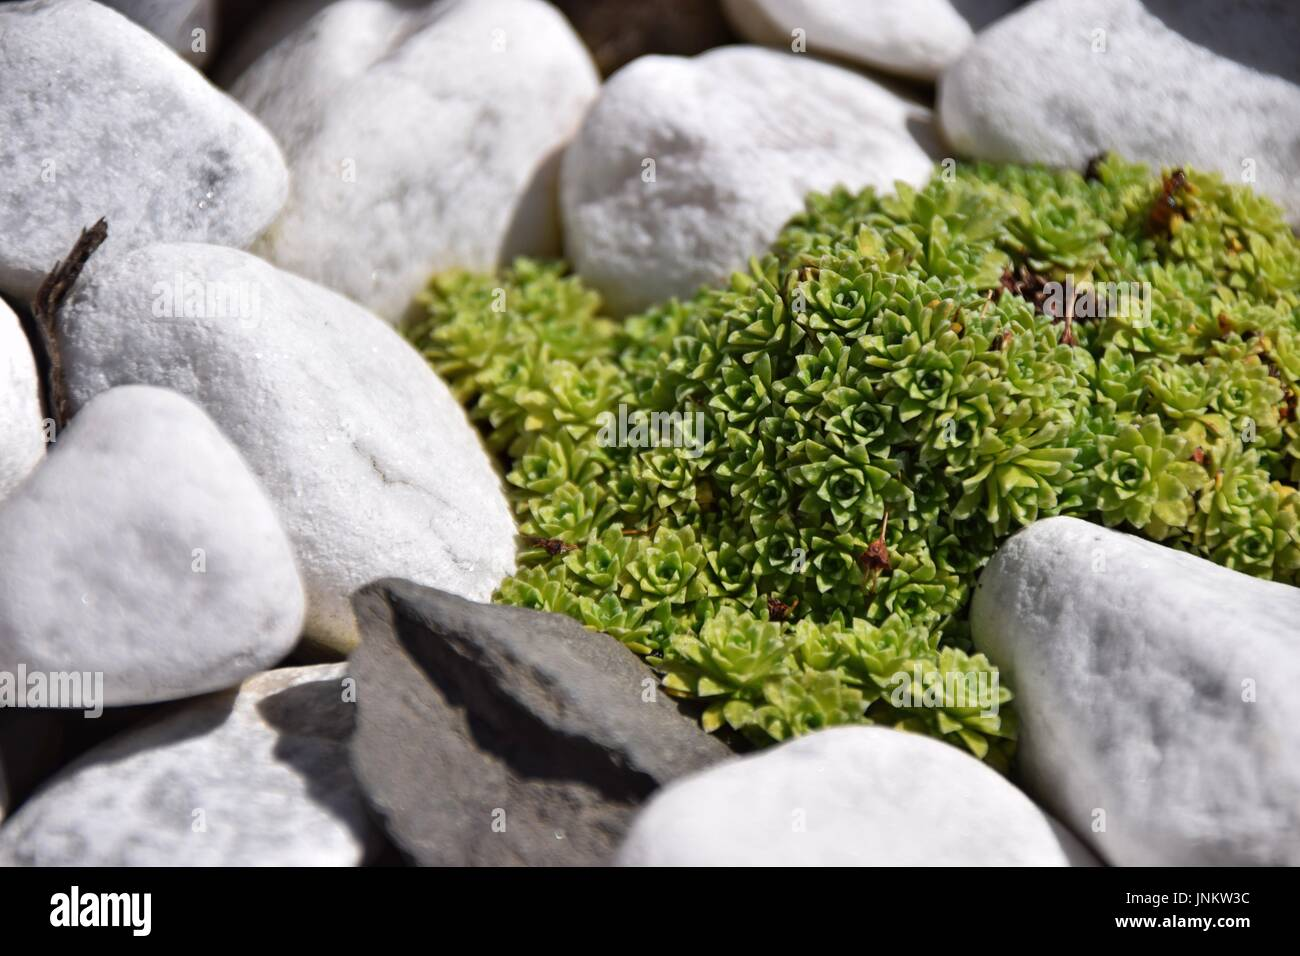 rock garden with succulents stock photos rock garden with succulents stock images alamy. Black Bedroom Furniture Sets. Home Design Ideas